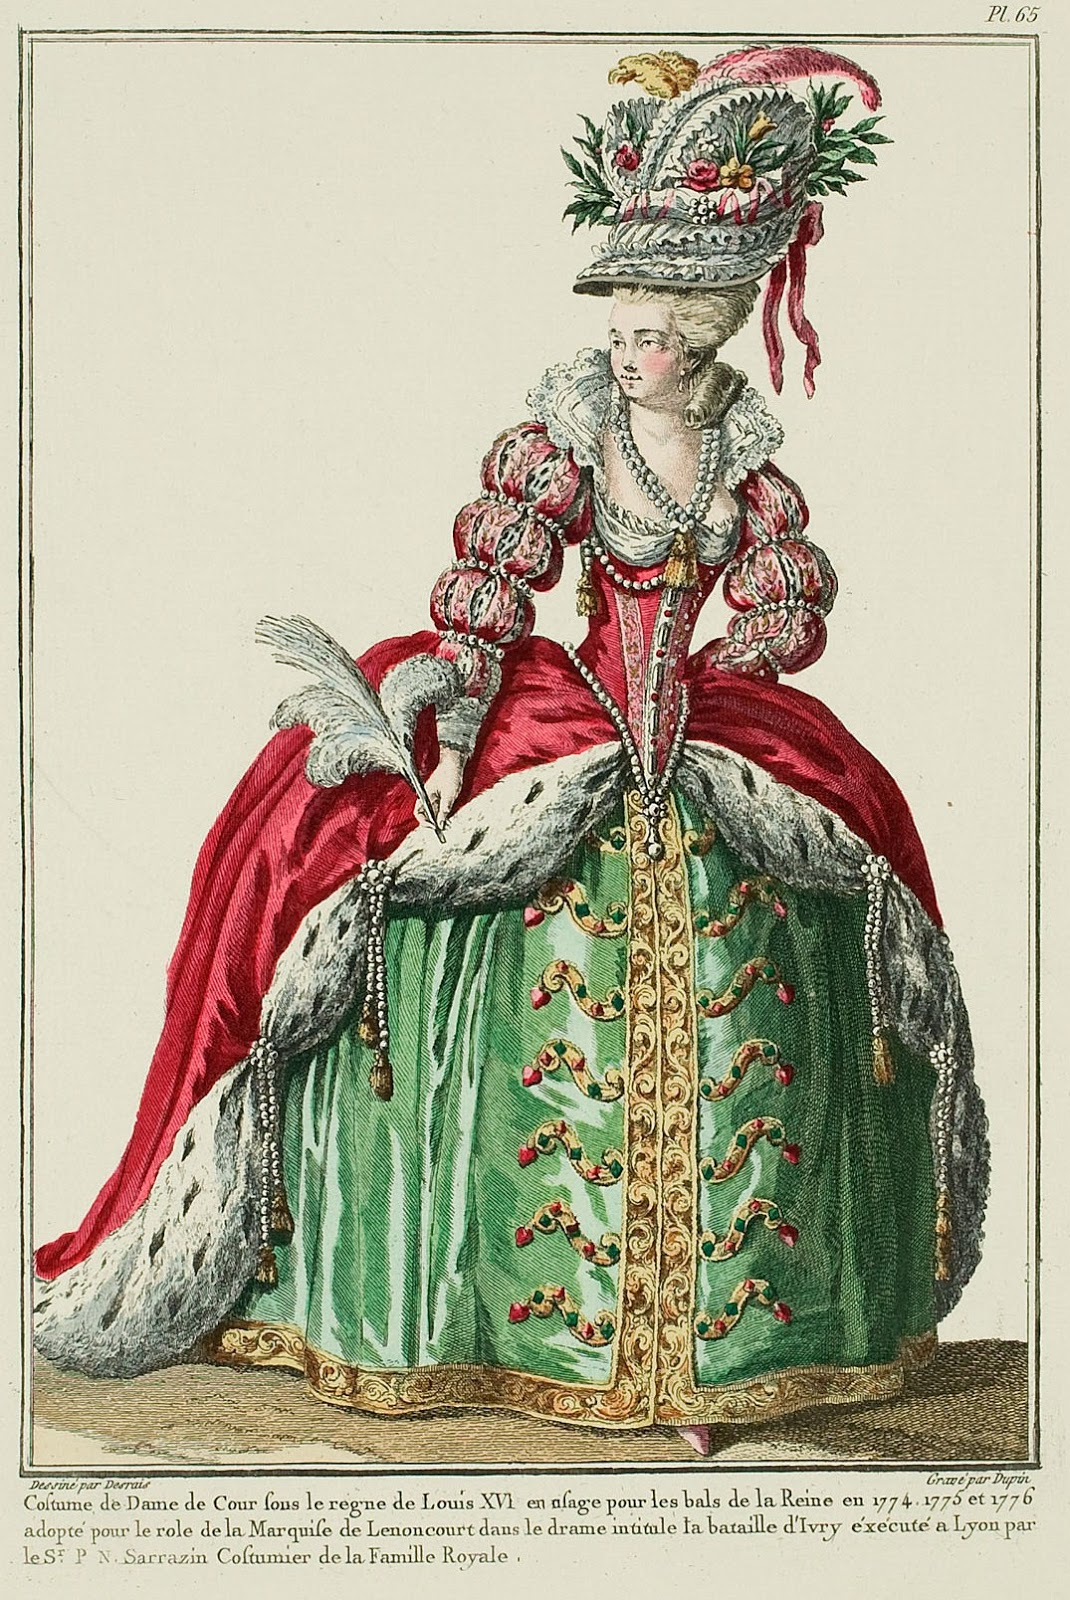 gender roles in 18th century france Women, work and sexual politics in eighteenth-century englandbridget hill (basil blackwell, 1989, viii + 275 pp) sexuality and social control: scotland 1660-1780.